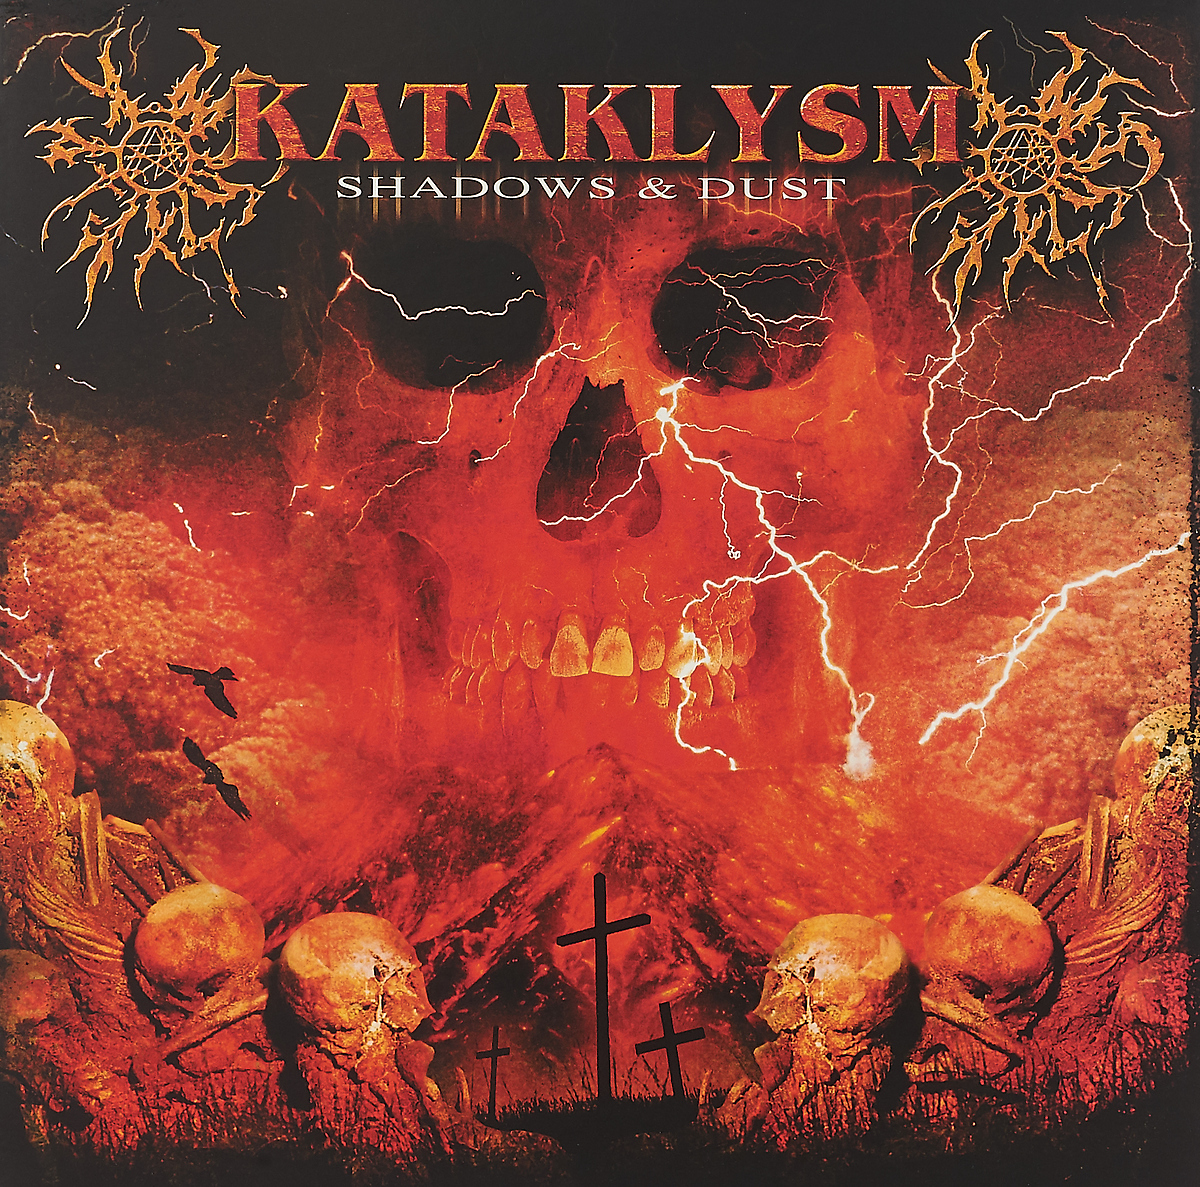 Kataklysm Kataklysm. Shadows & Dust (LP) корм для кошек mi mi кусочки в желе ягненок конс 80г